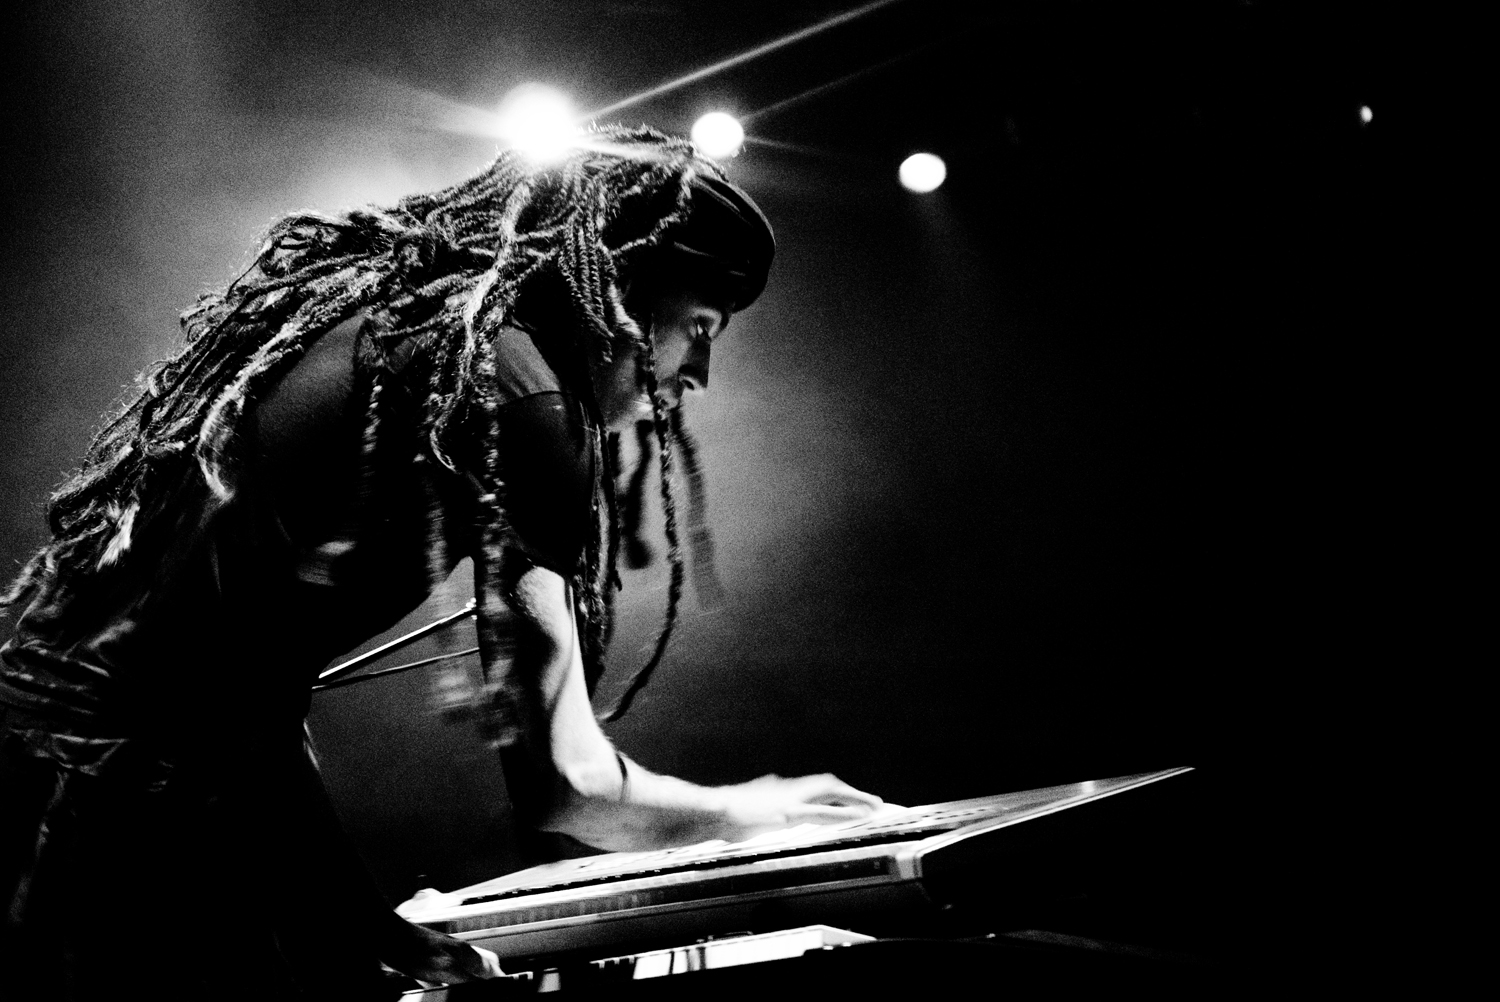 Israeli musician Idan Raichel at the keyboard. Photo by Nitzan Treystman